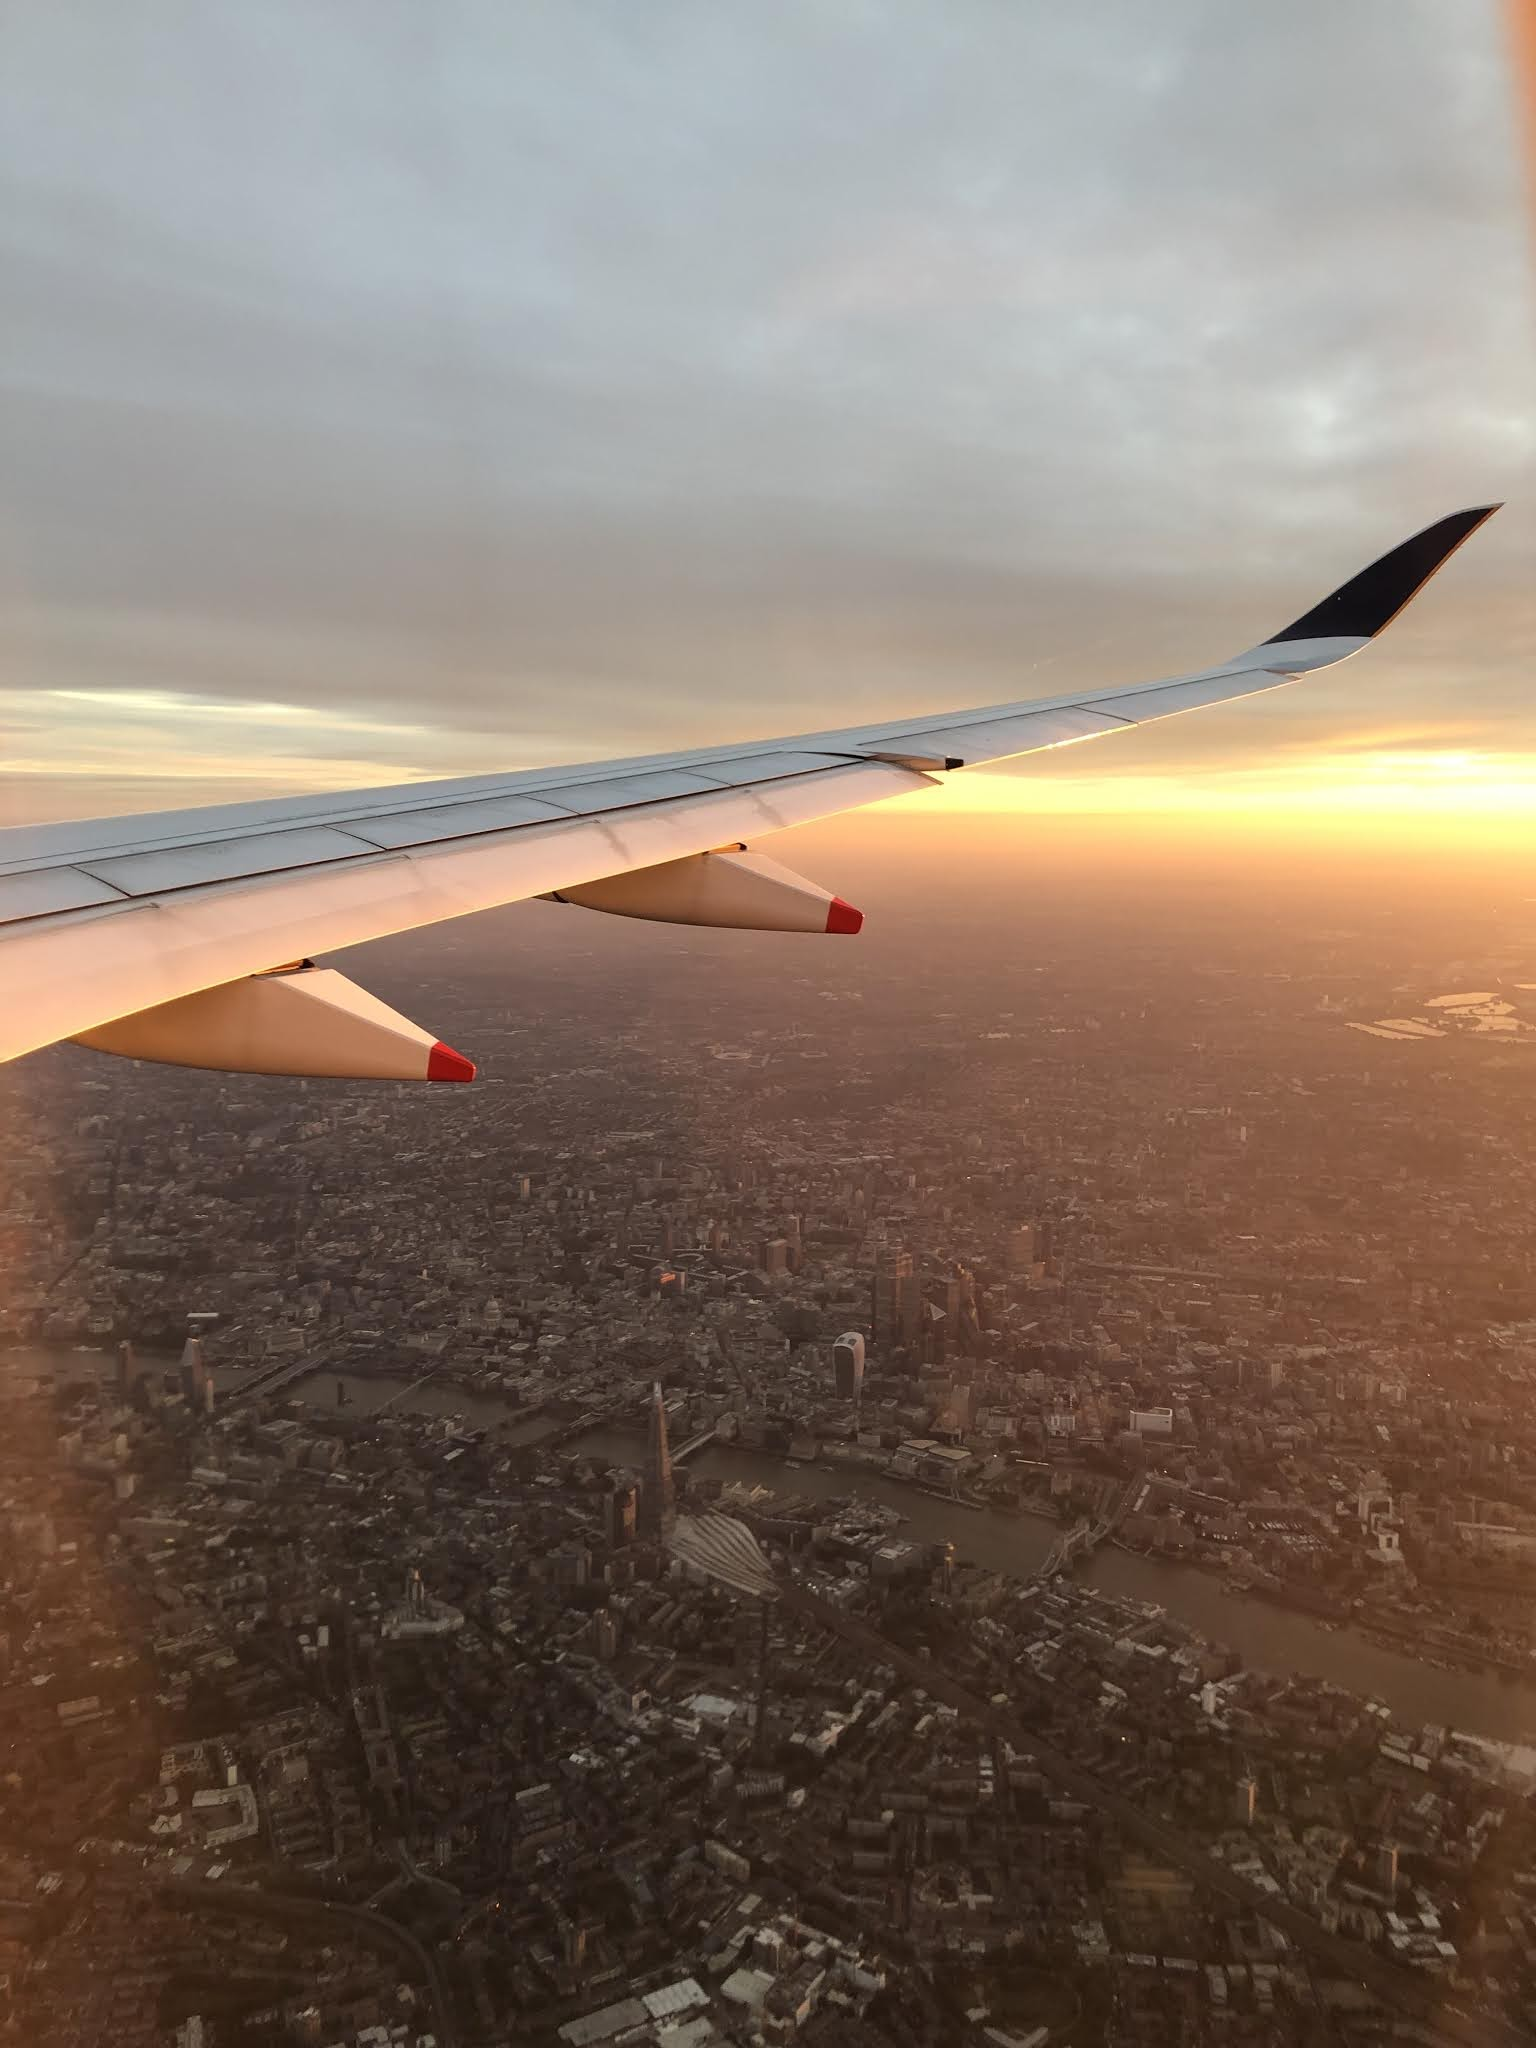 London during sunrise shot from an airplane